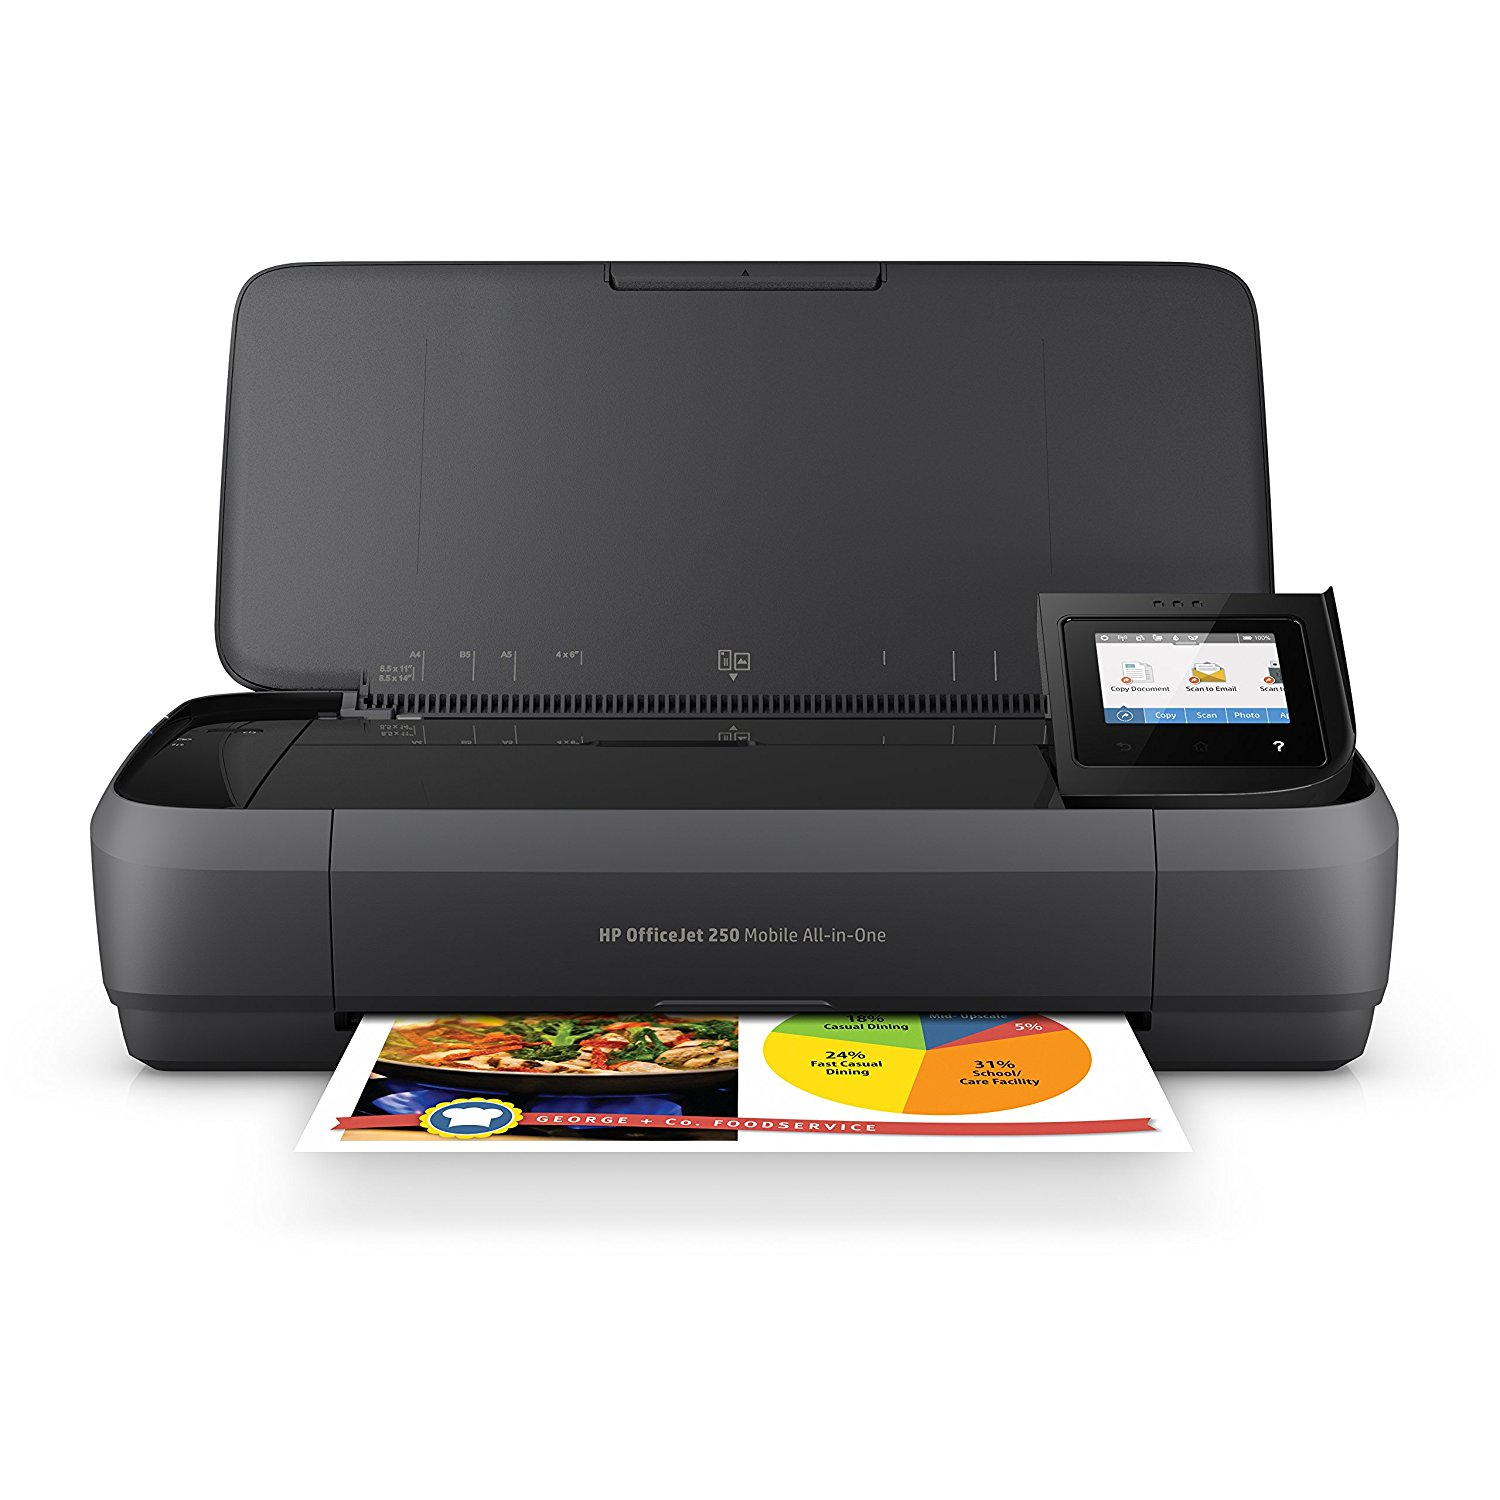 HP OfficeJet All-in-One Portable Printer